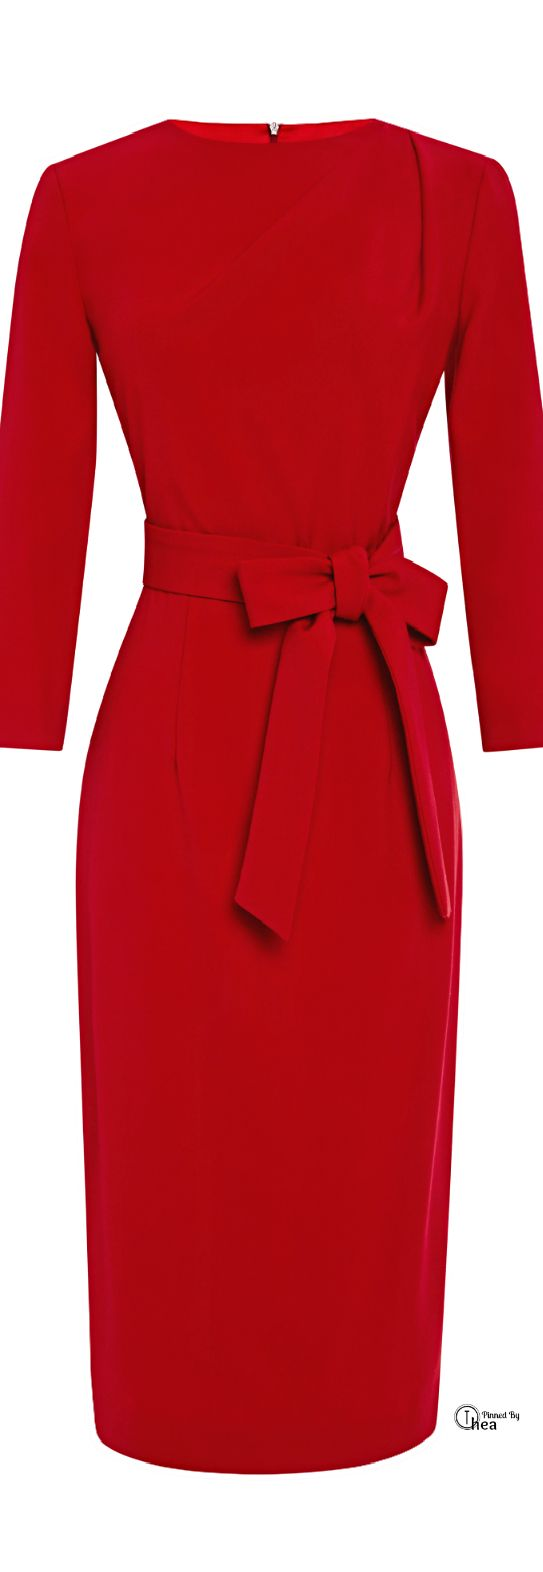 A La Russe ● FW 2014, Pencil Dress With Pleats I am a sucker for red. I love the lines on this one and especially the belt that adds a very elegant look to a simple dress. LOVE IT!